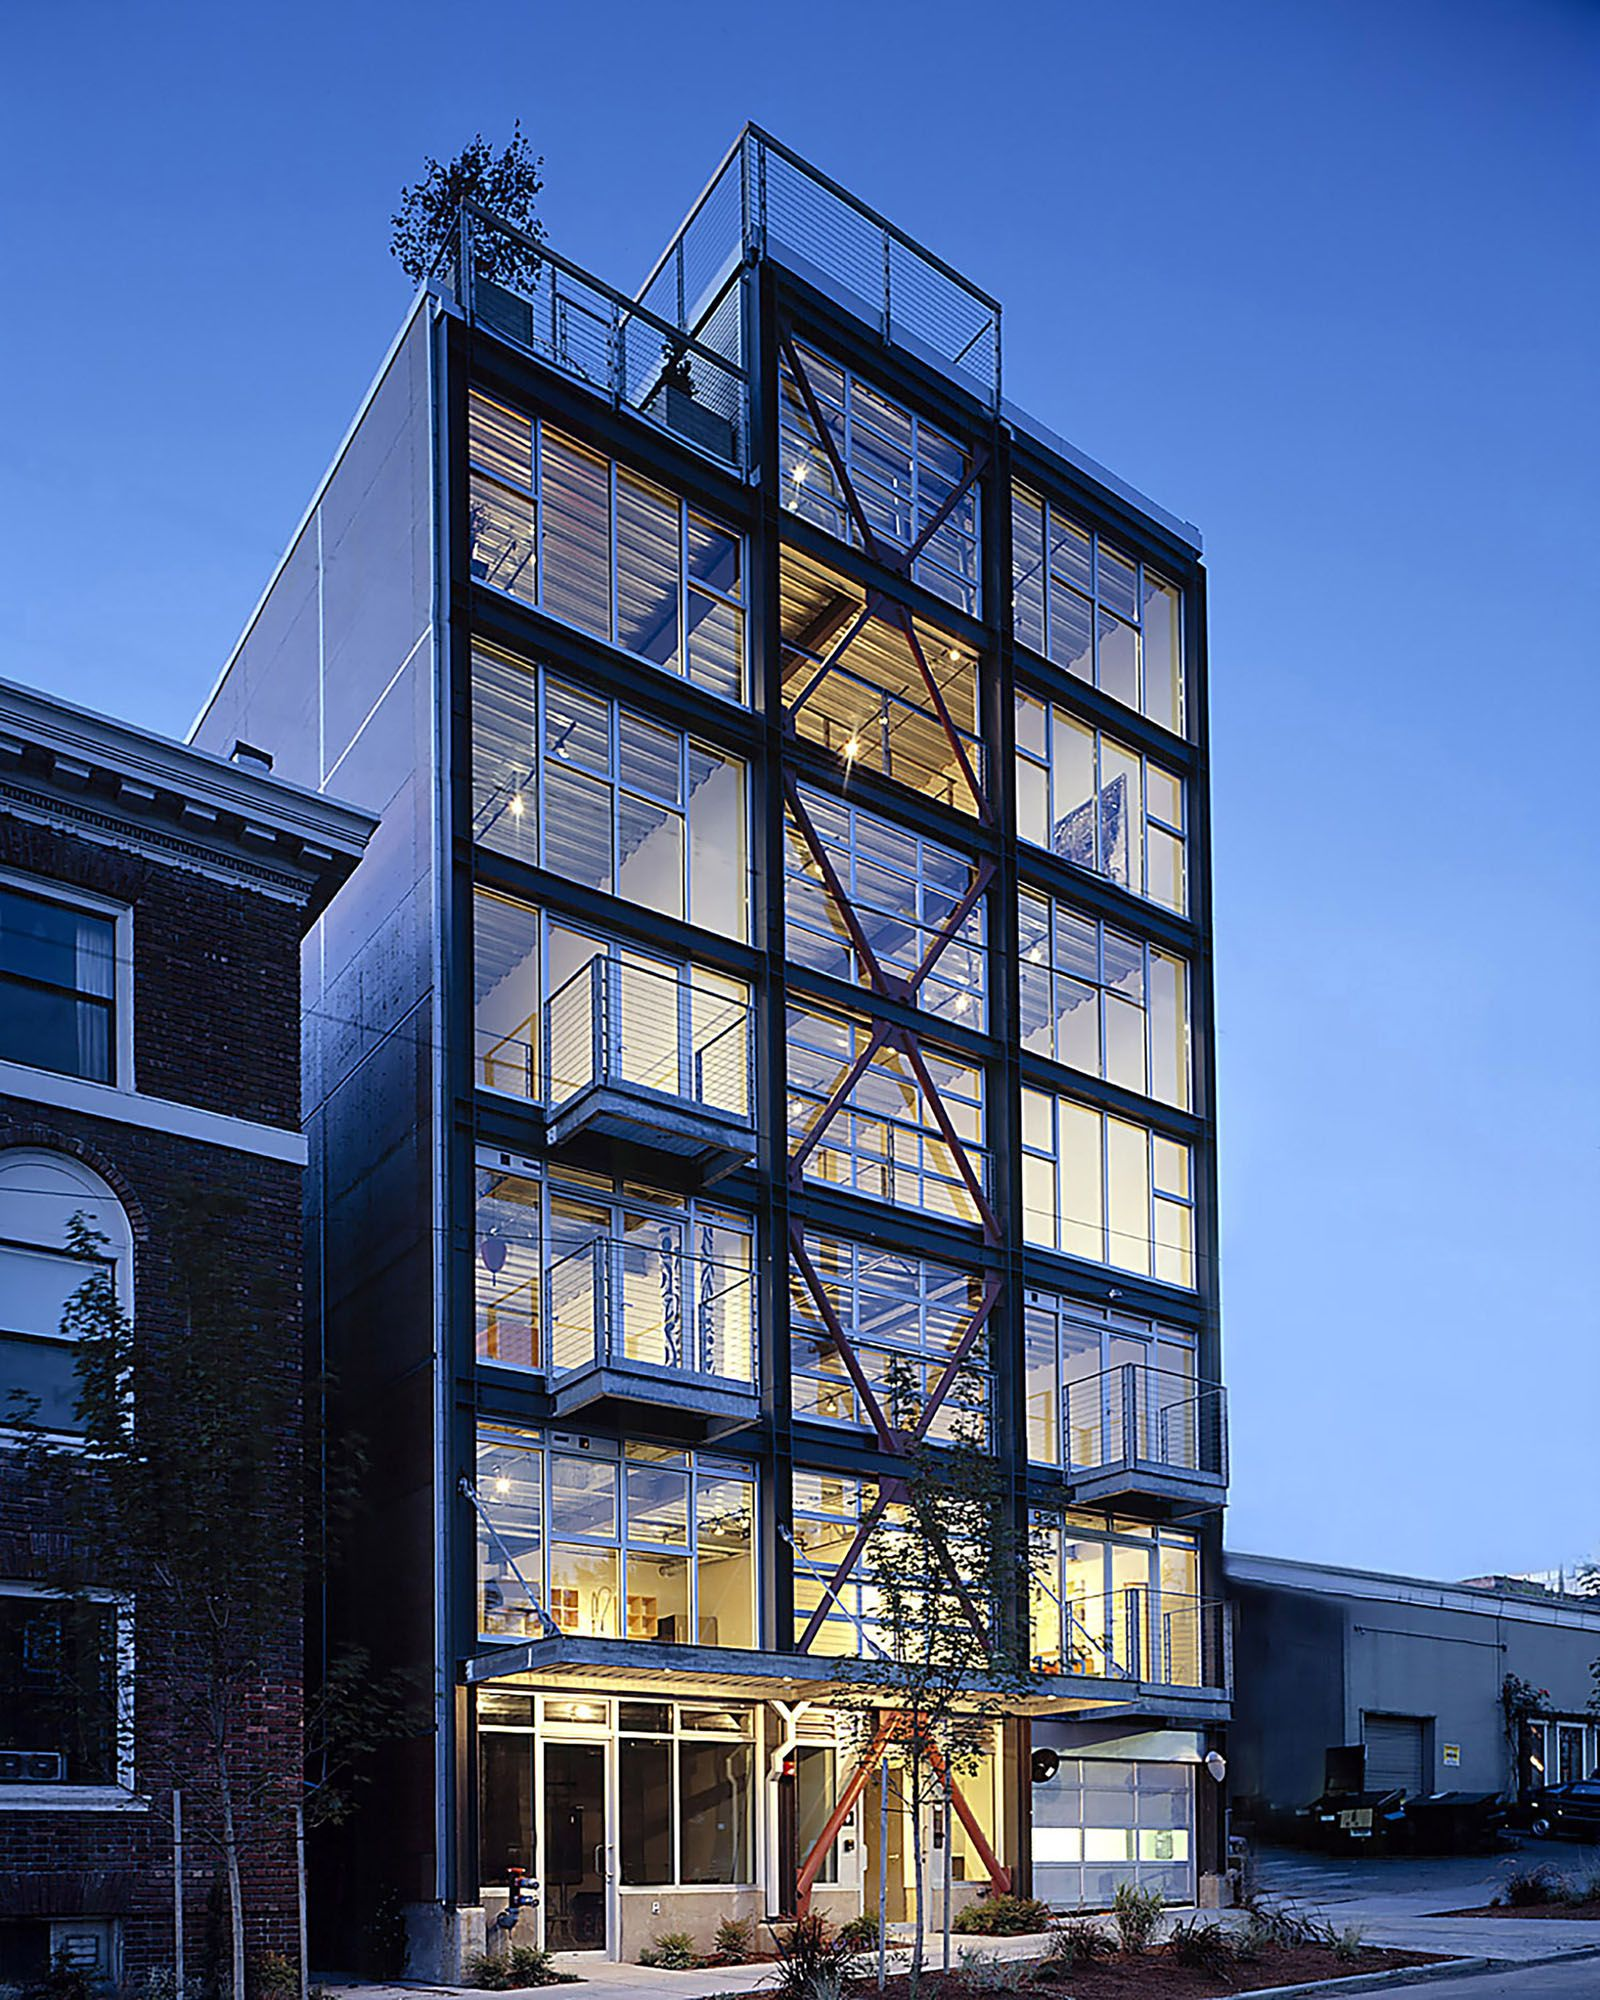 Cool Apartment Buildings capitol hill seattle loft apartment building | cool architectural